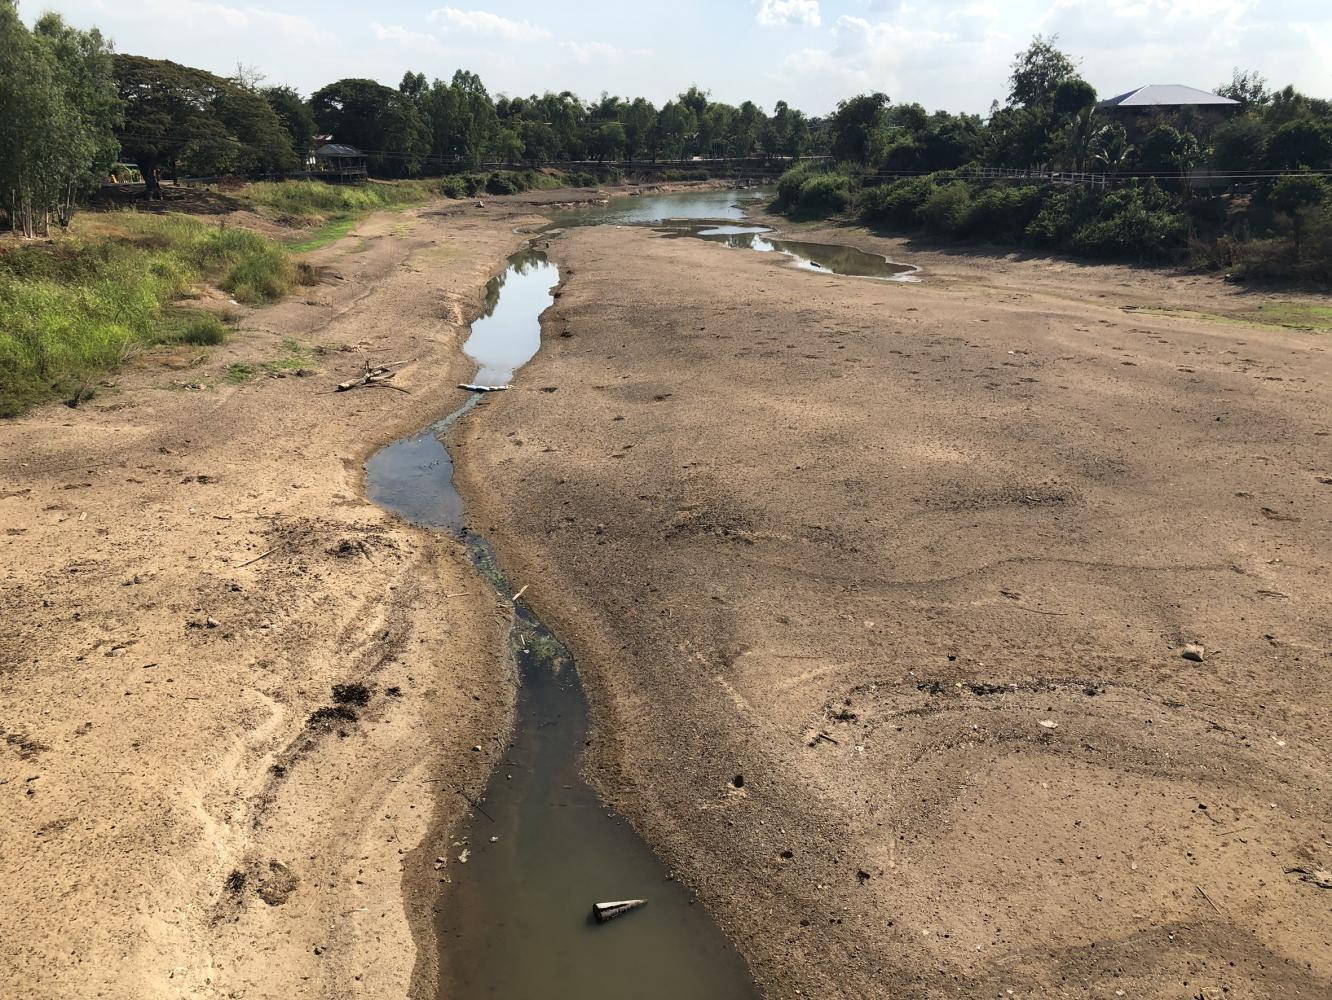 Parched offerings: A dried-up riverbed is visible at a section of the Yom River in Phichit's Sam Ngam district as drought takes its toll on locals who do not have enough water for farming.